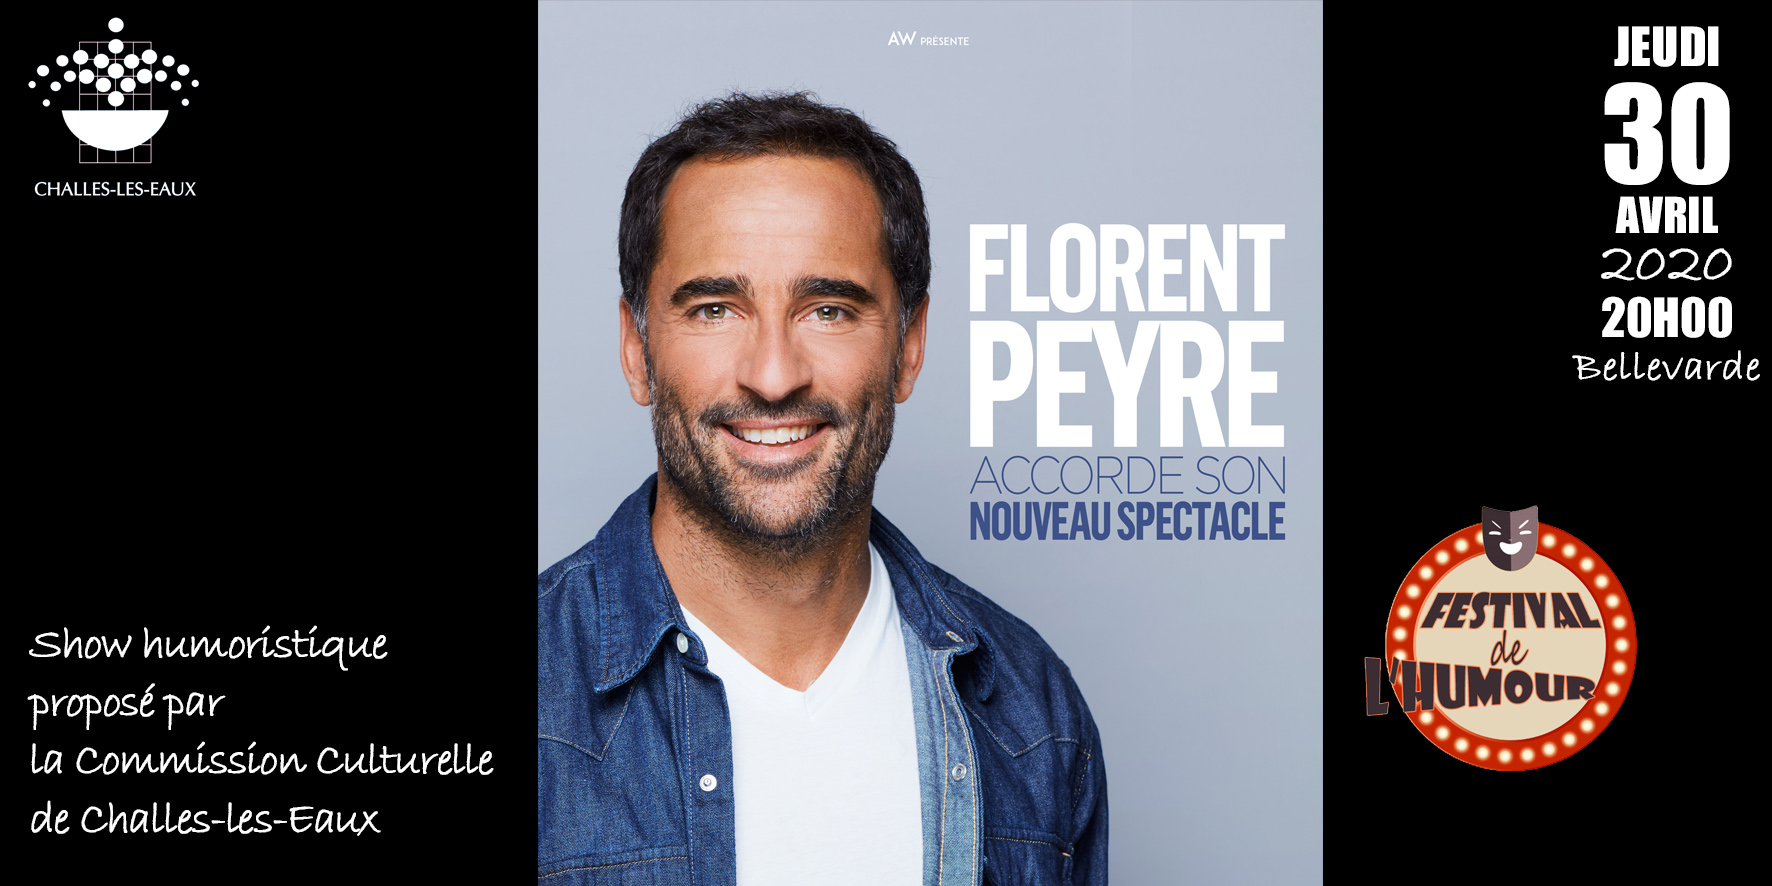 Printemps de l'humour : Florent Peyre accorde son nouveau spectacle